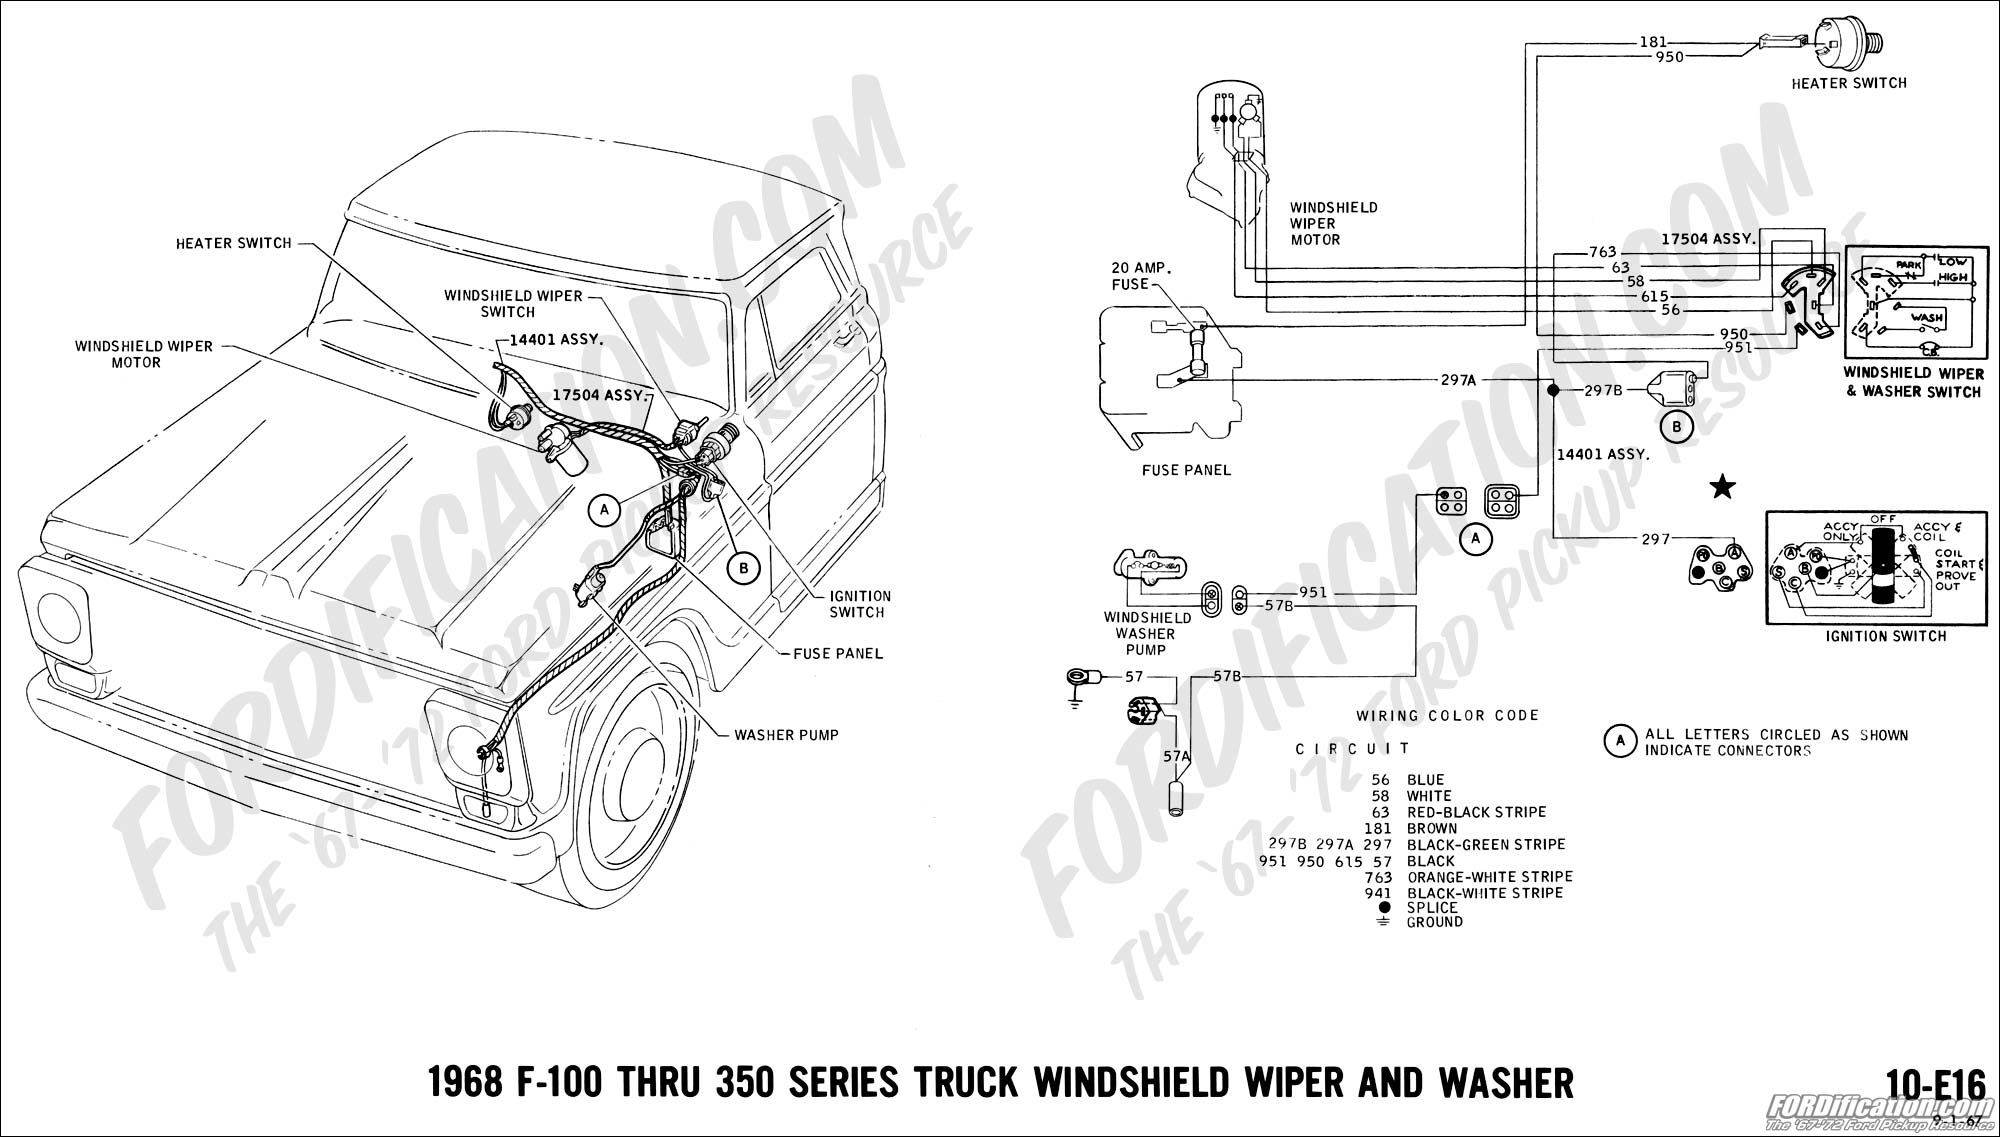 1987 Ford Mustang Fuse Box Location Trusted Wiring Diagram 1994 1968 F100 Easy To Read Diagrams U2022 2010